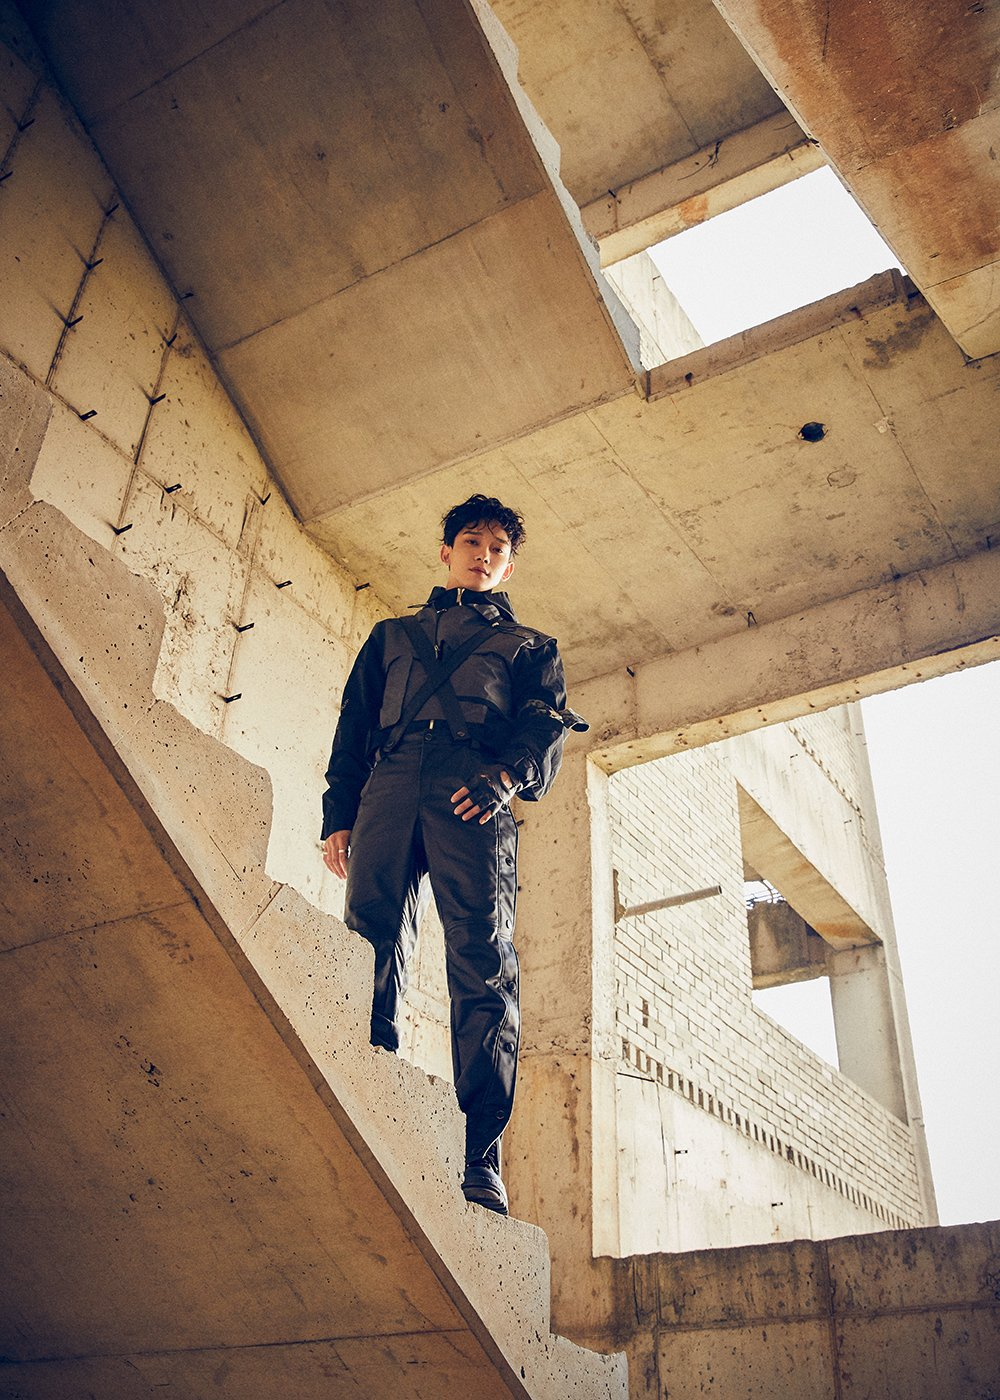 EXO's Chen Show His Fierce and Manly Looks in 'OBSESSION' Album Teaser